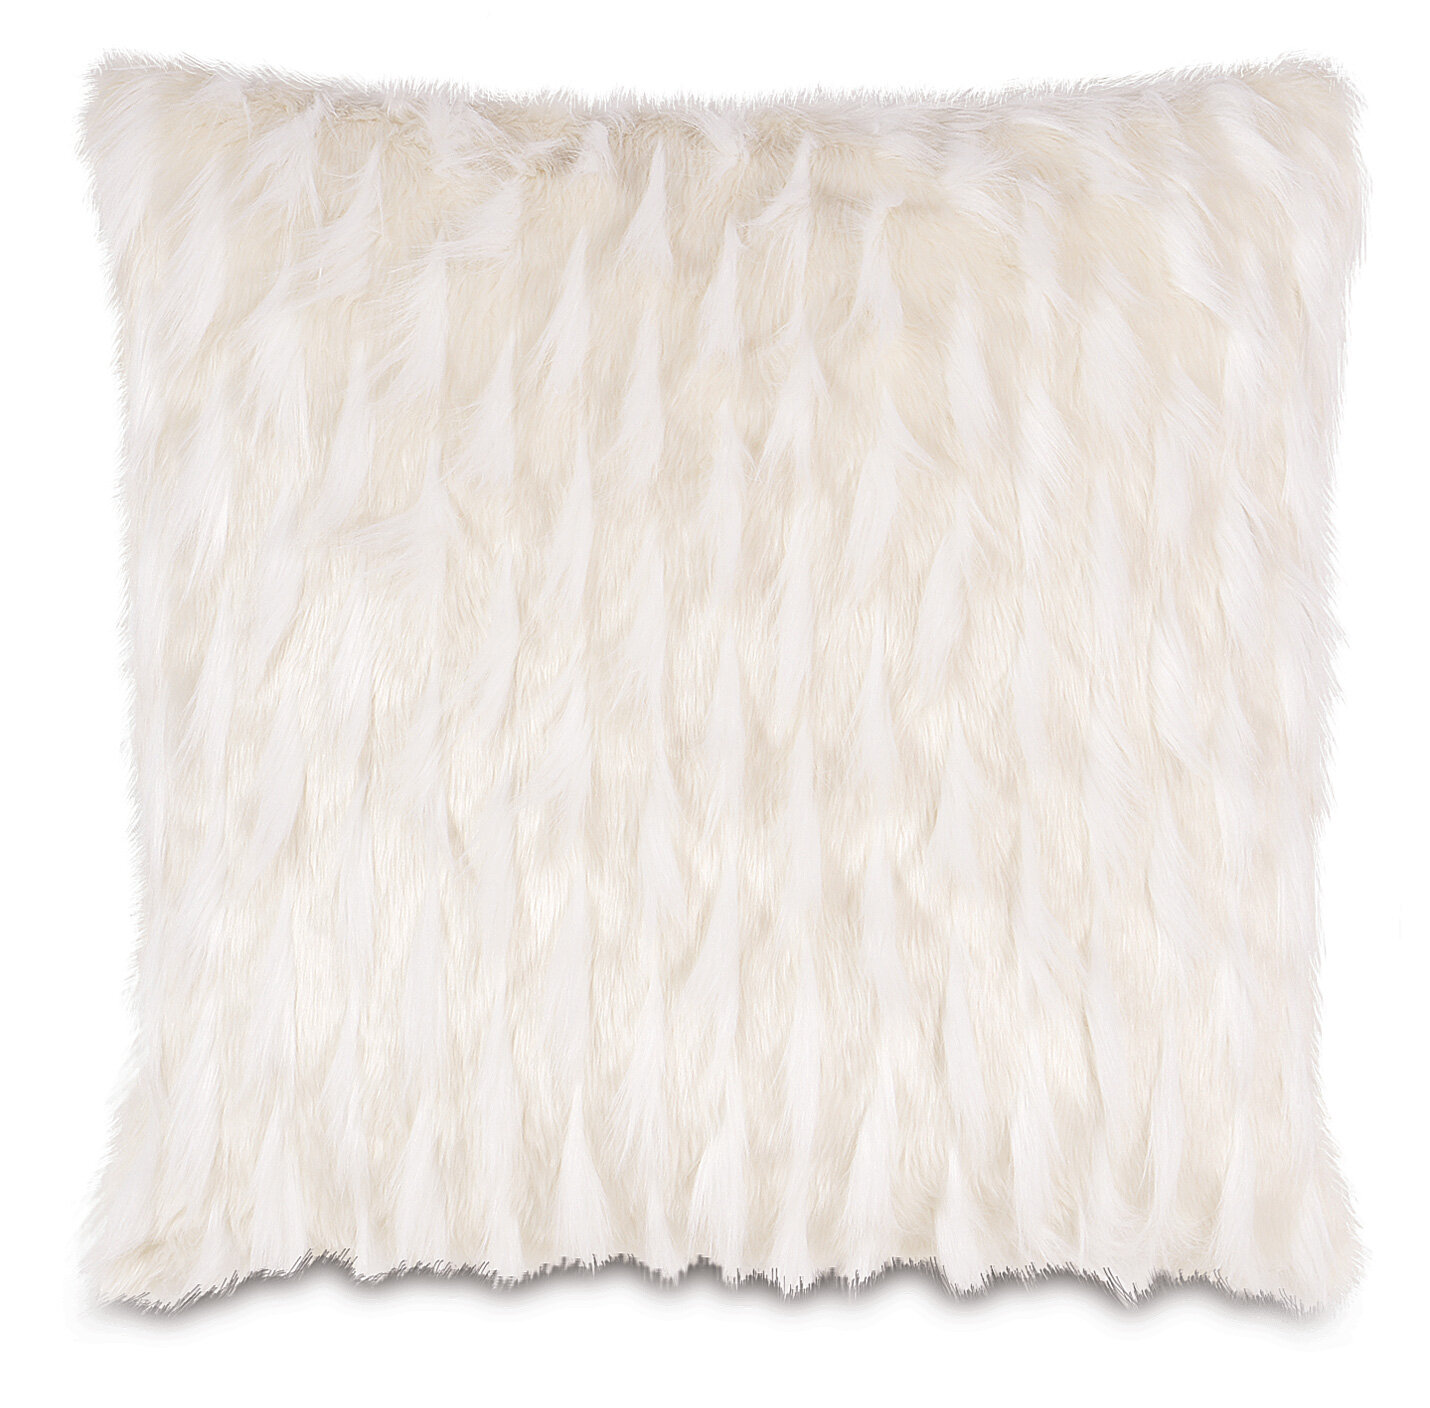 Eastern Accents Geode Luxe Faux Fur Throw Pillow Wayfair